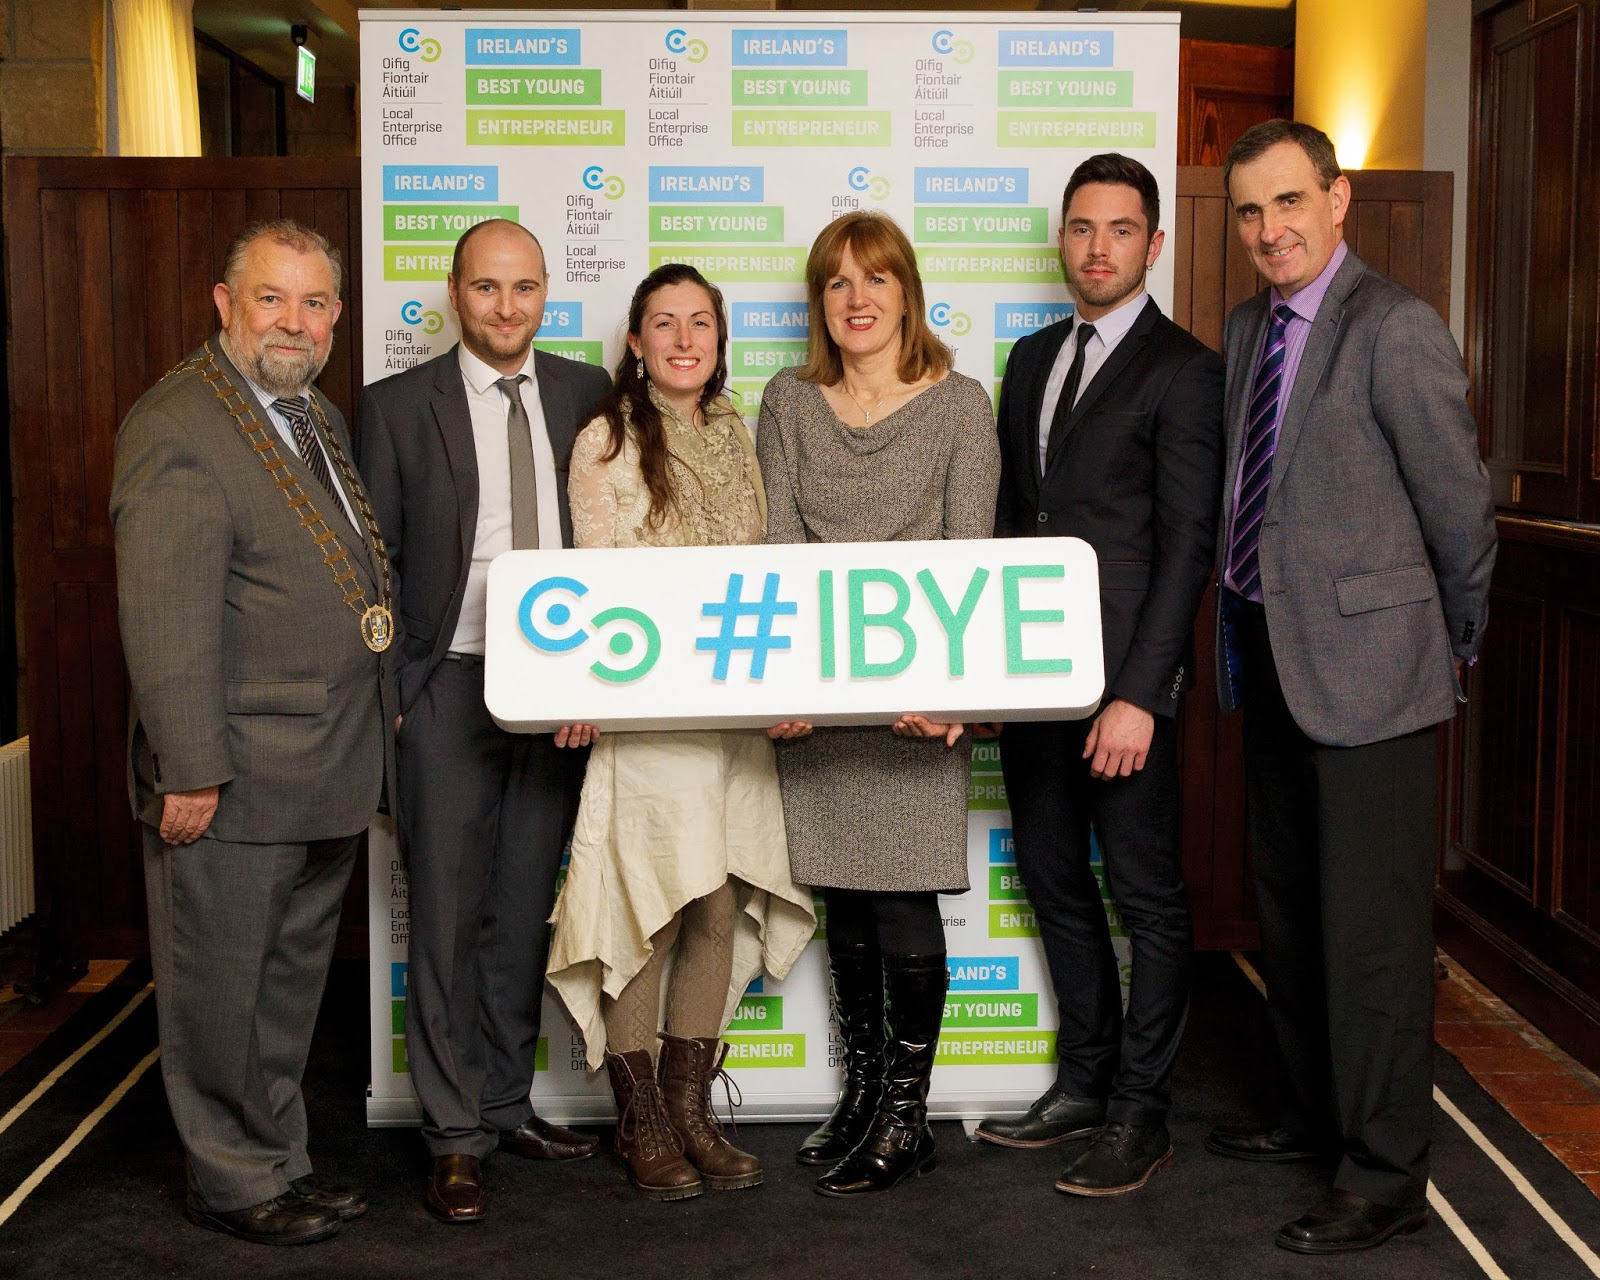 Clare businesses compete at 'Best Young Entrepreneur' Regional Final